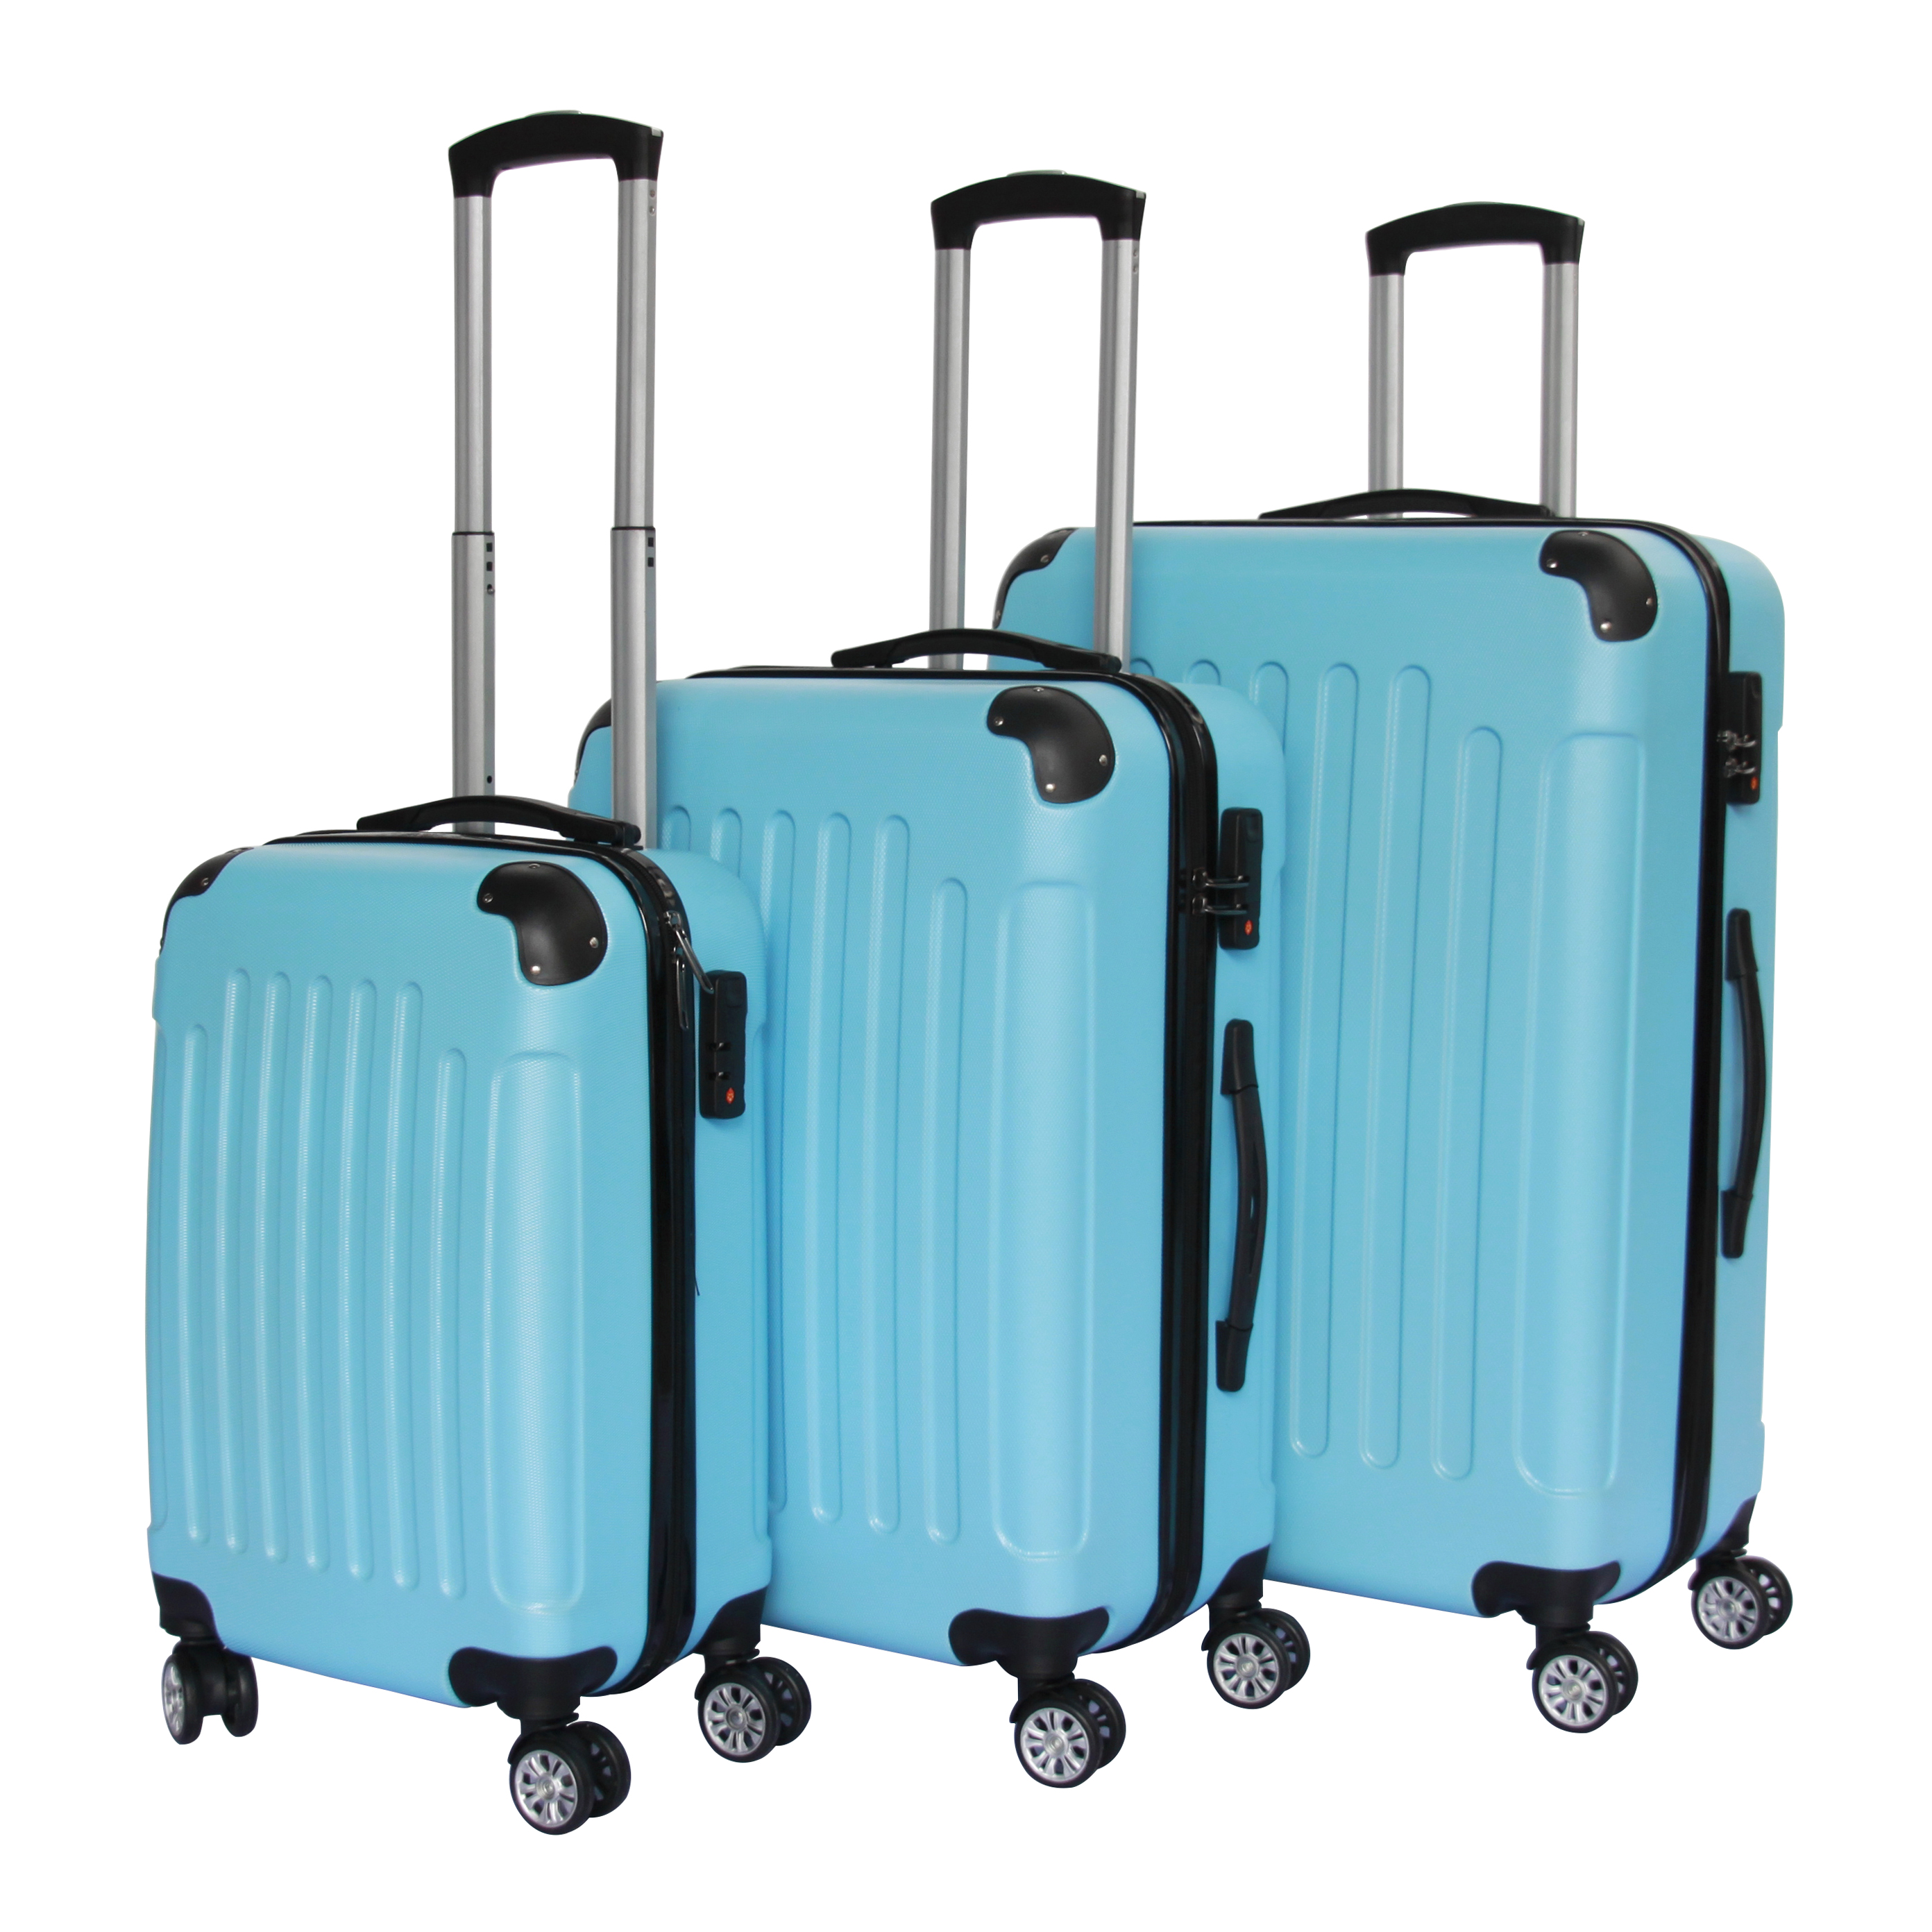 2018 abs 3 piece luggage set USB charger function  hard shell suitcase spinner luggage